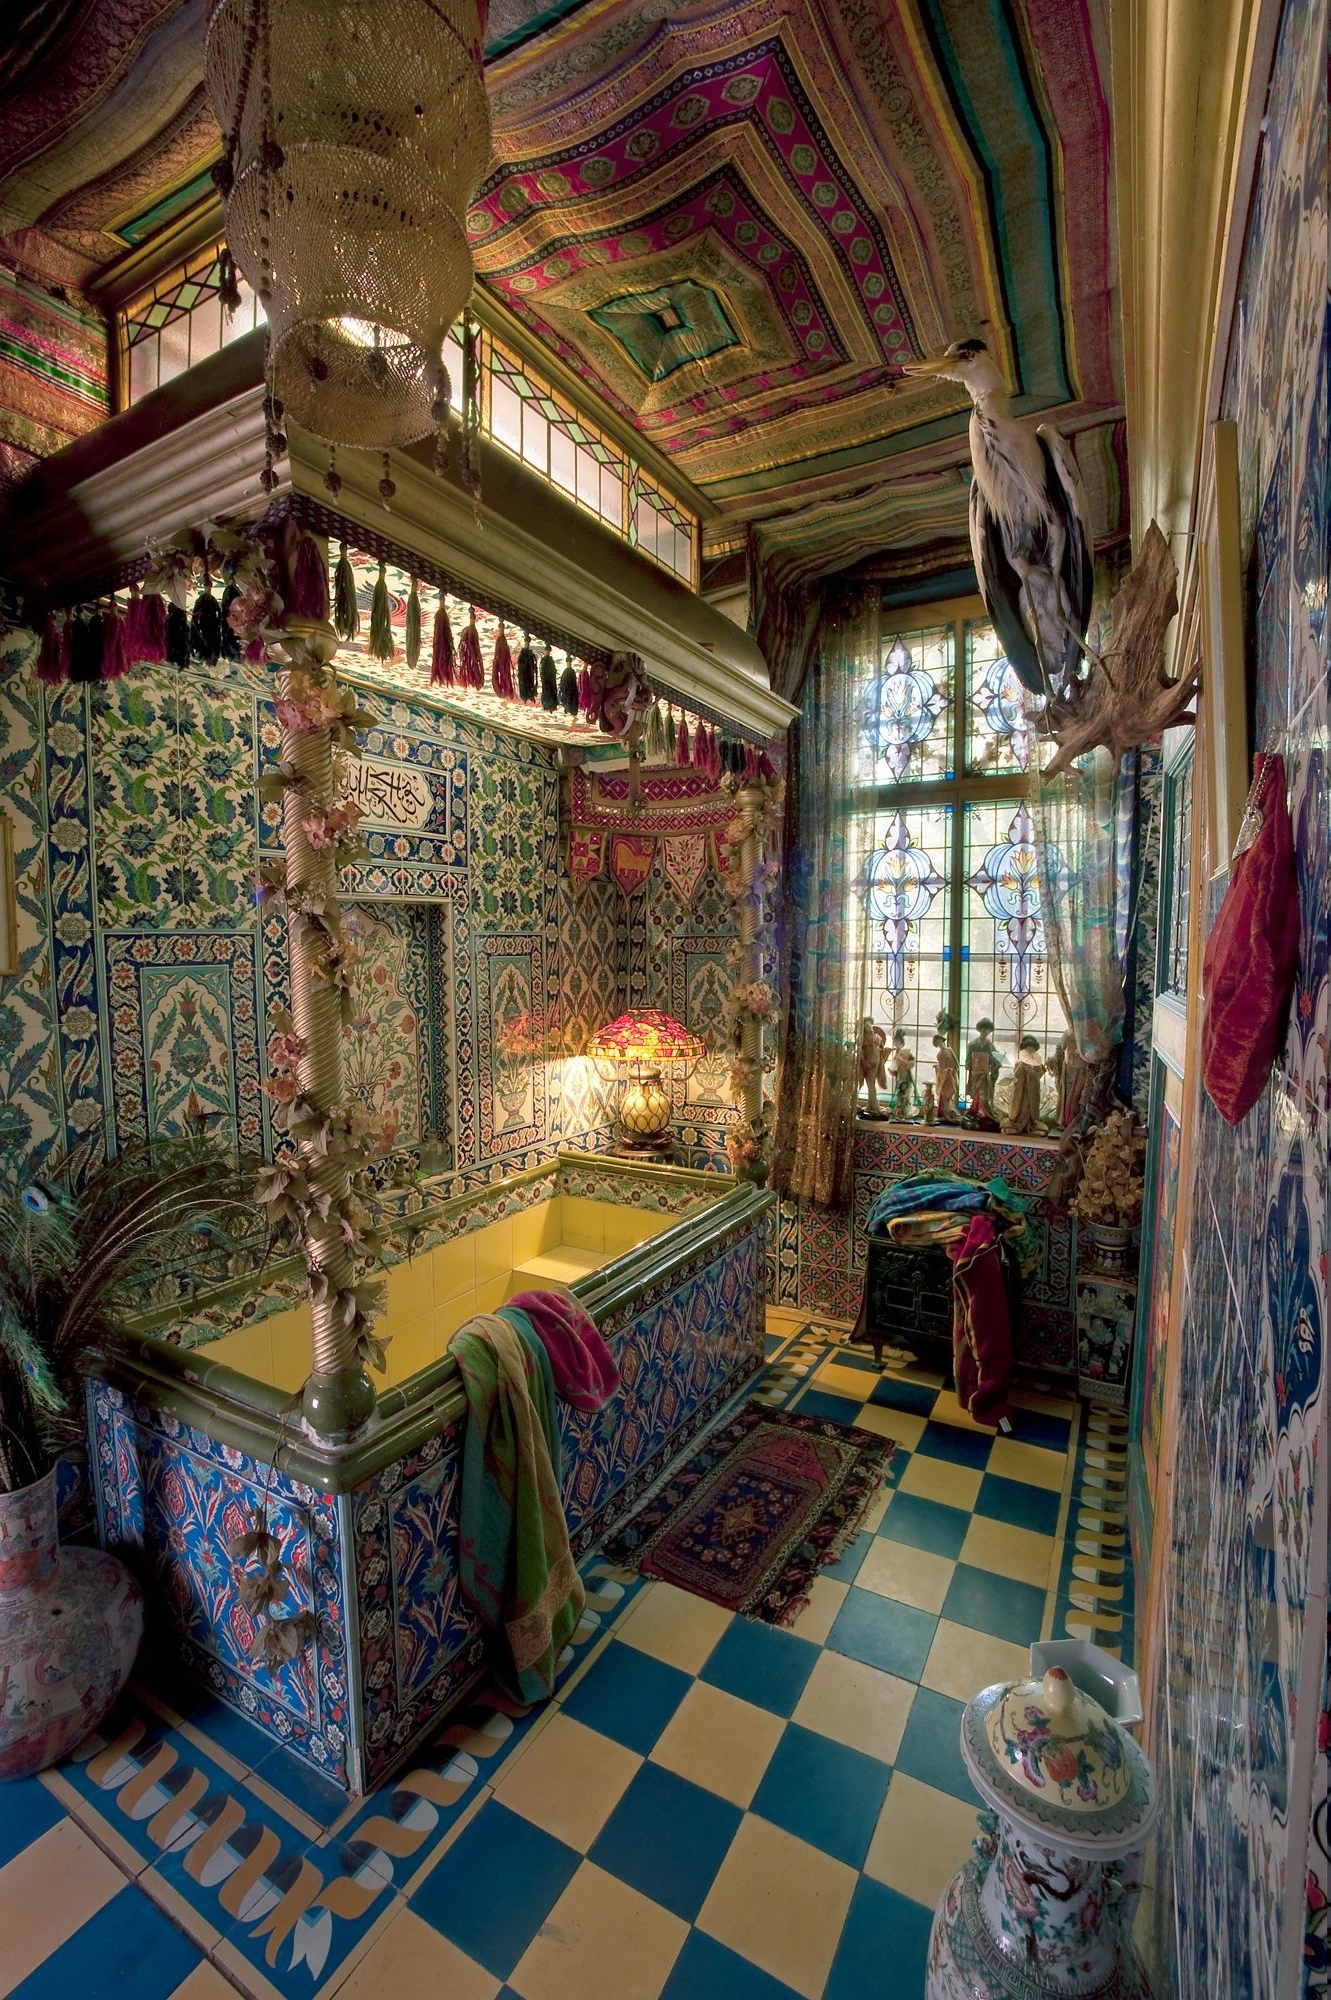 Decorate Your Bathroom With Old World Charm | Home, Bohemian 40+ Gypsy Bathroom Inspirations